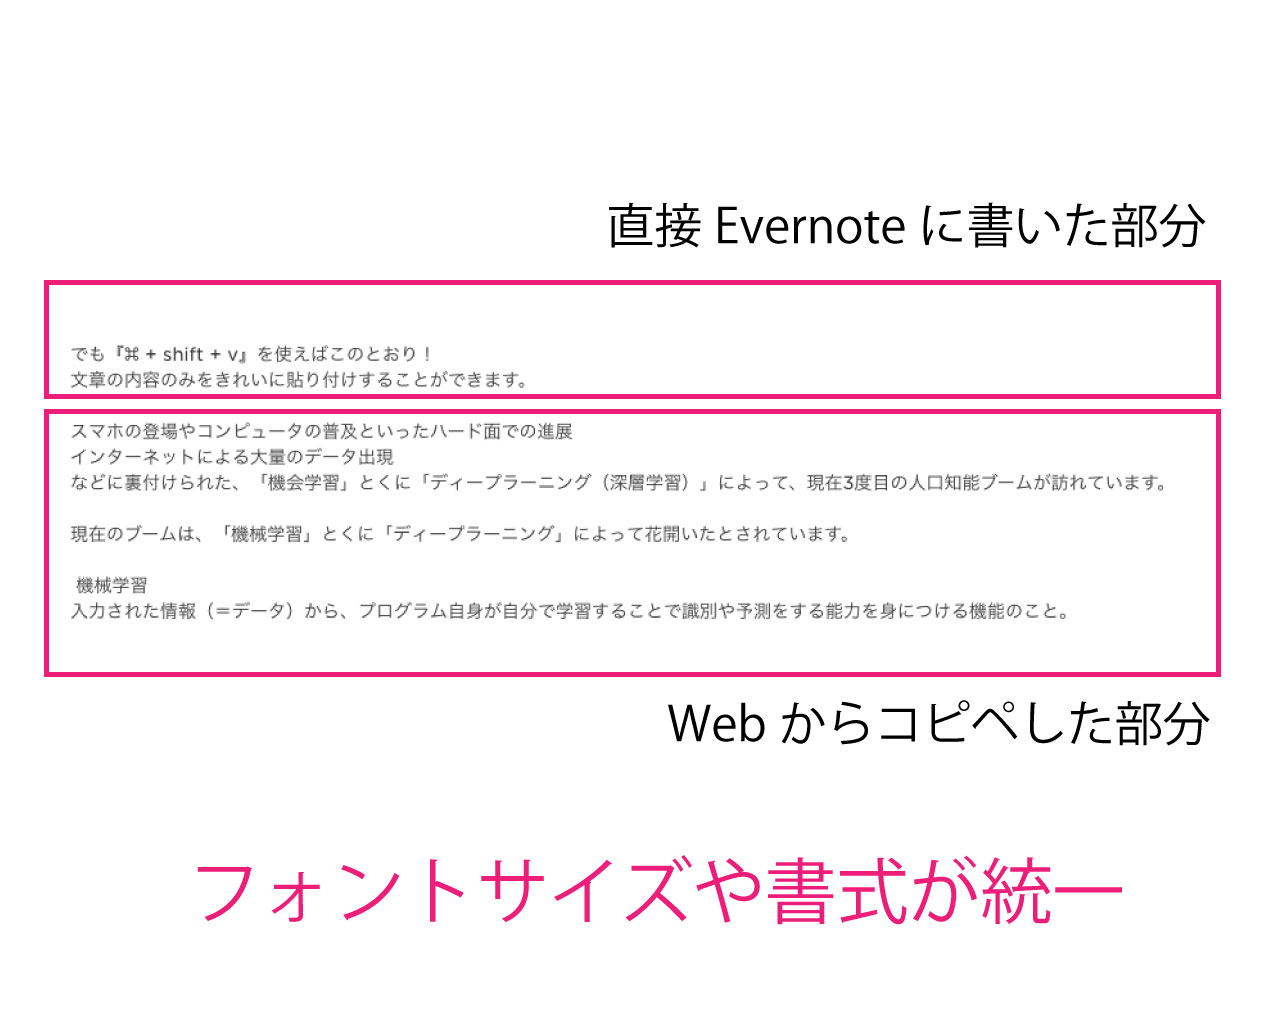 website-evernote-copy-and-paste2-1